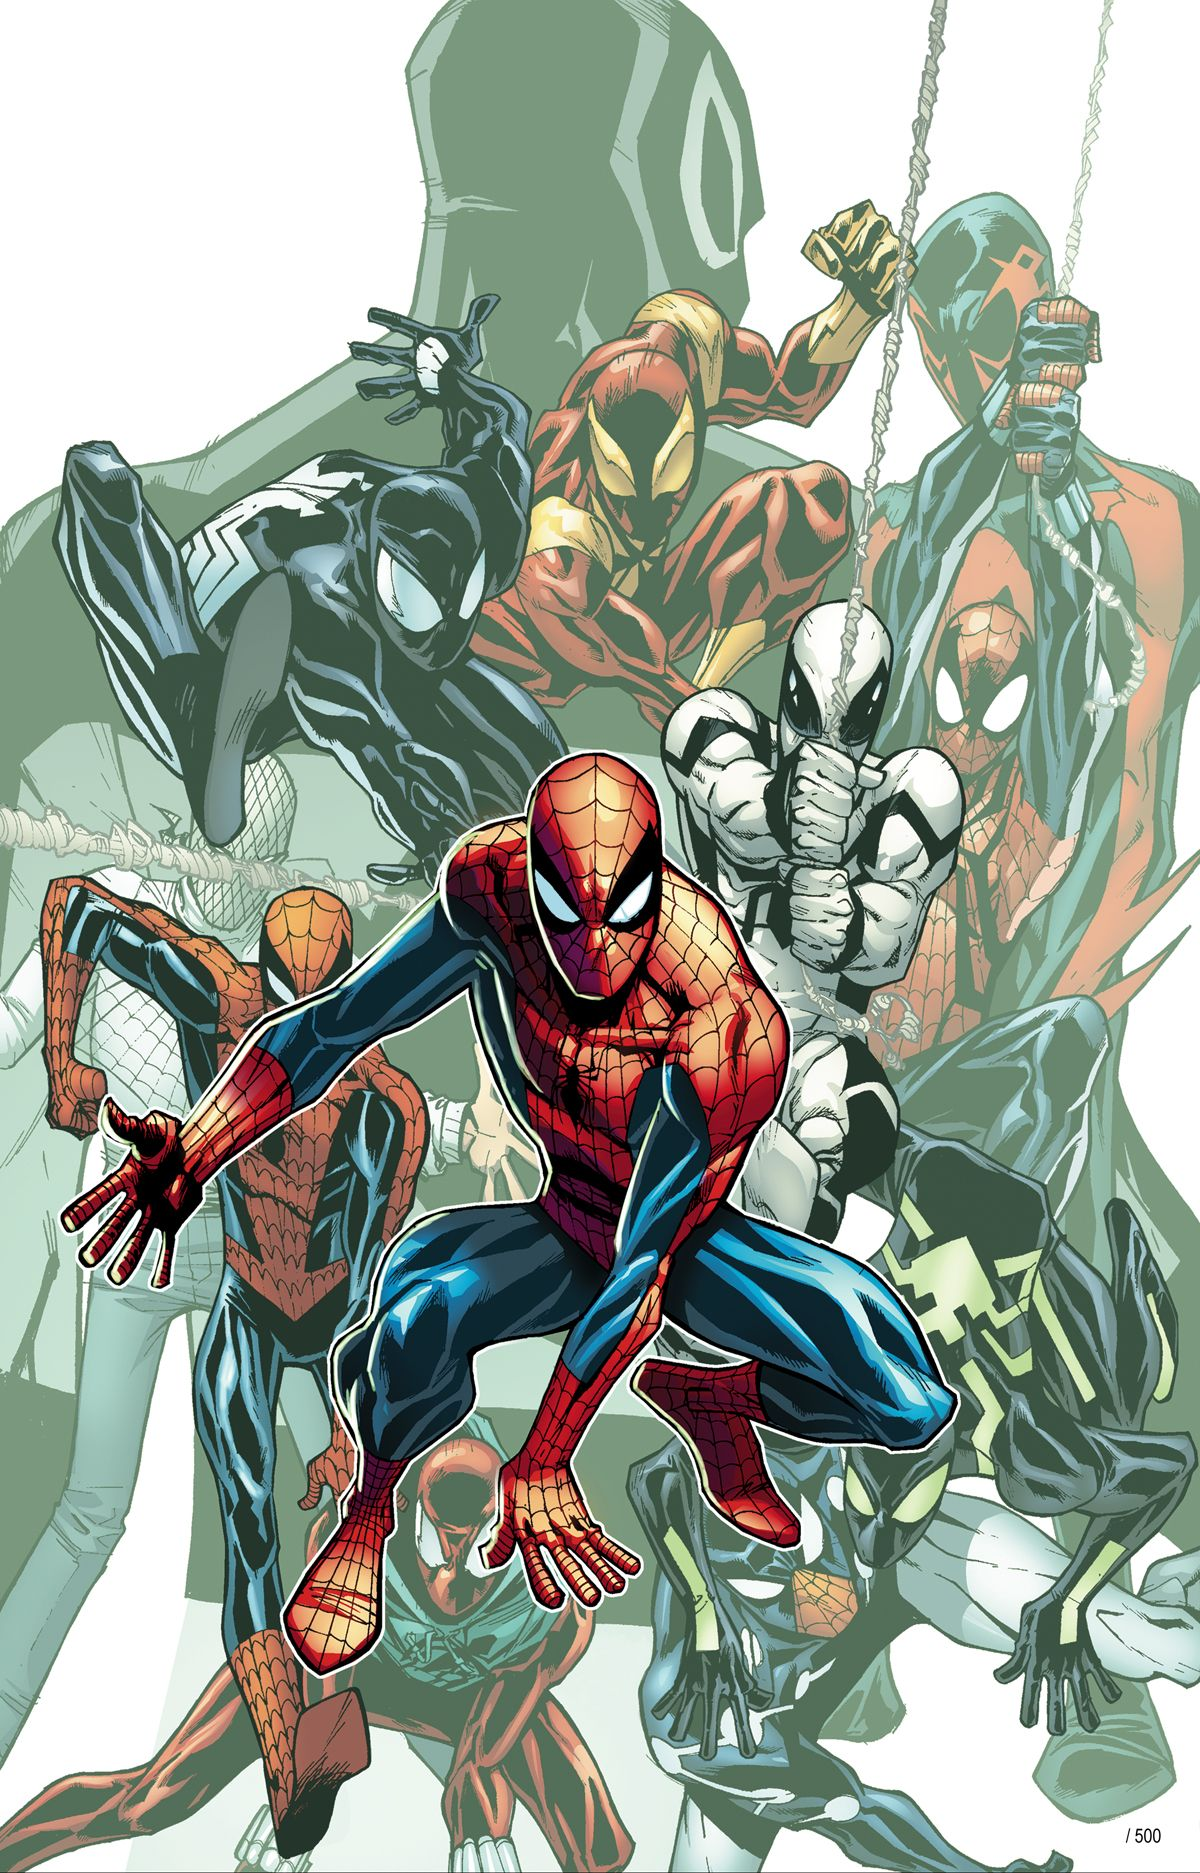 The Amazing Spider-Man #692. Limited Edition art available for purchase at artinsights.com